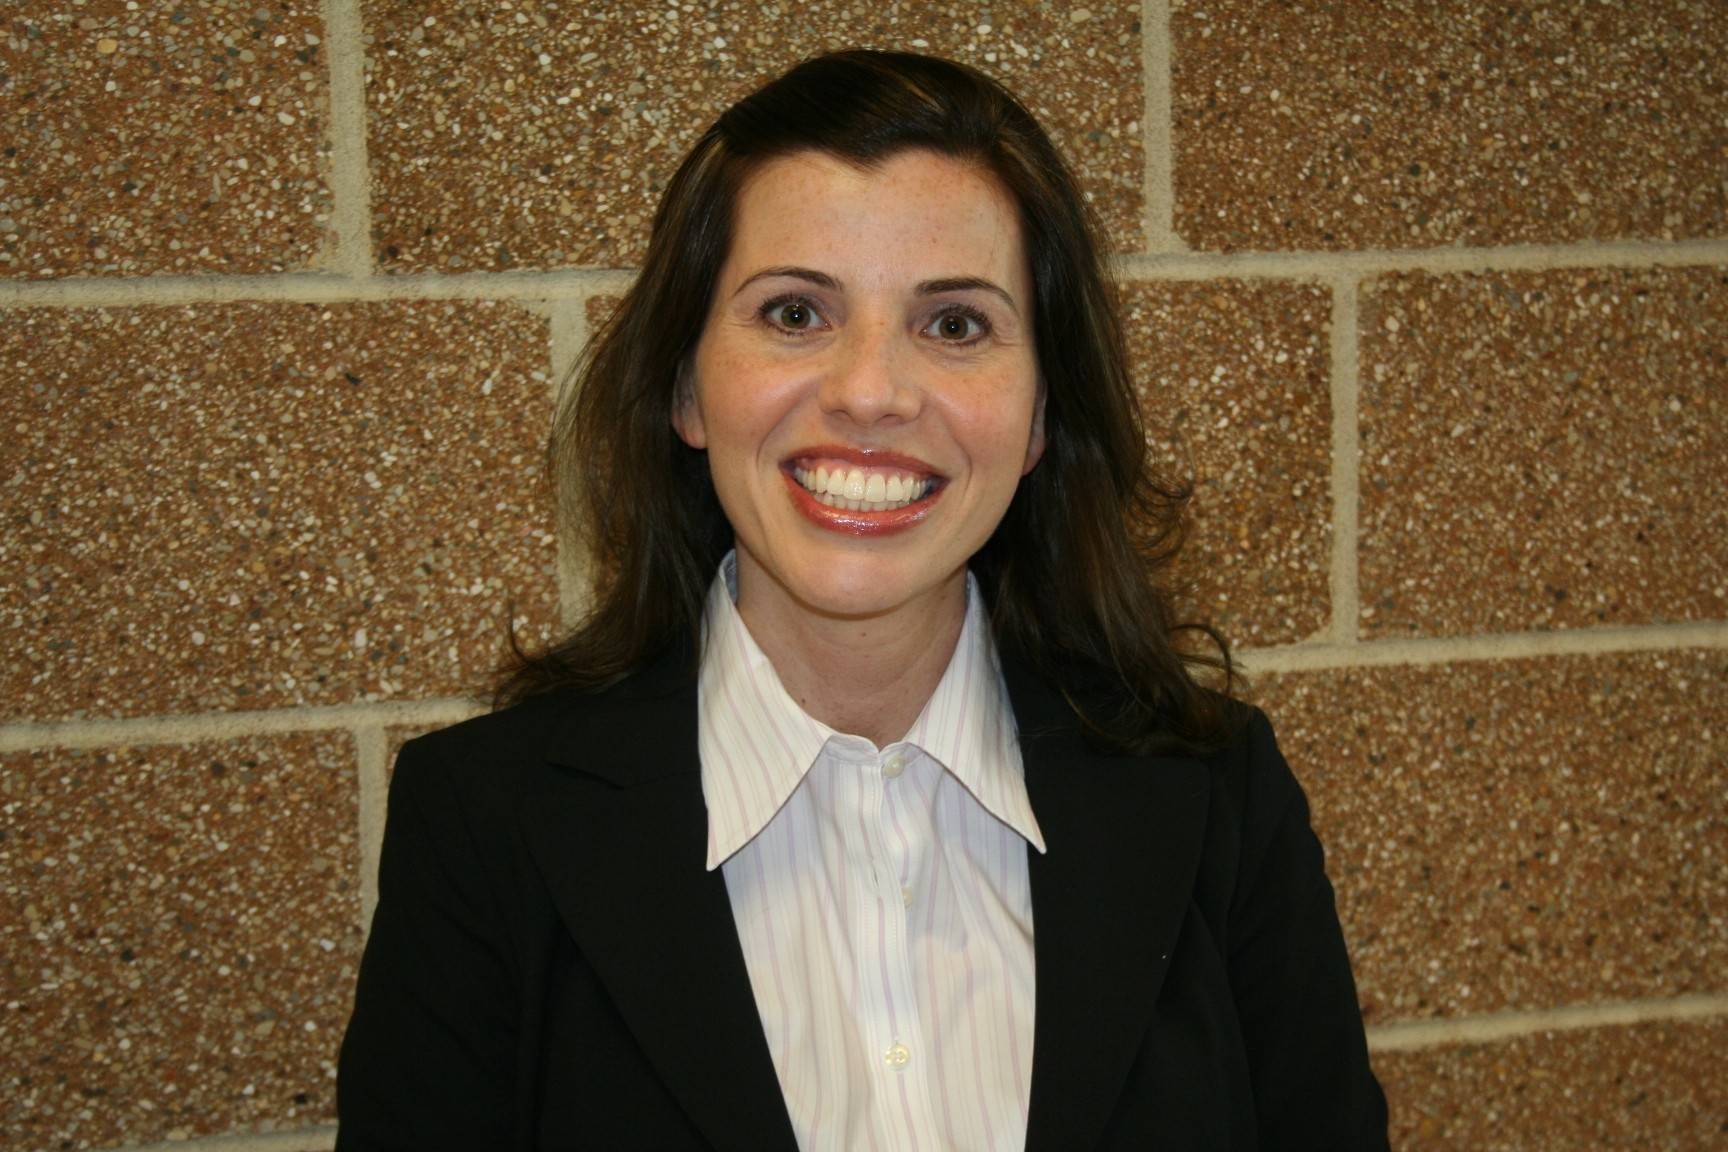 Christine Fredrick will take over as principal of District 200's Pleasant Hill Elementary School next school year.